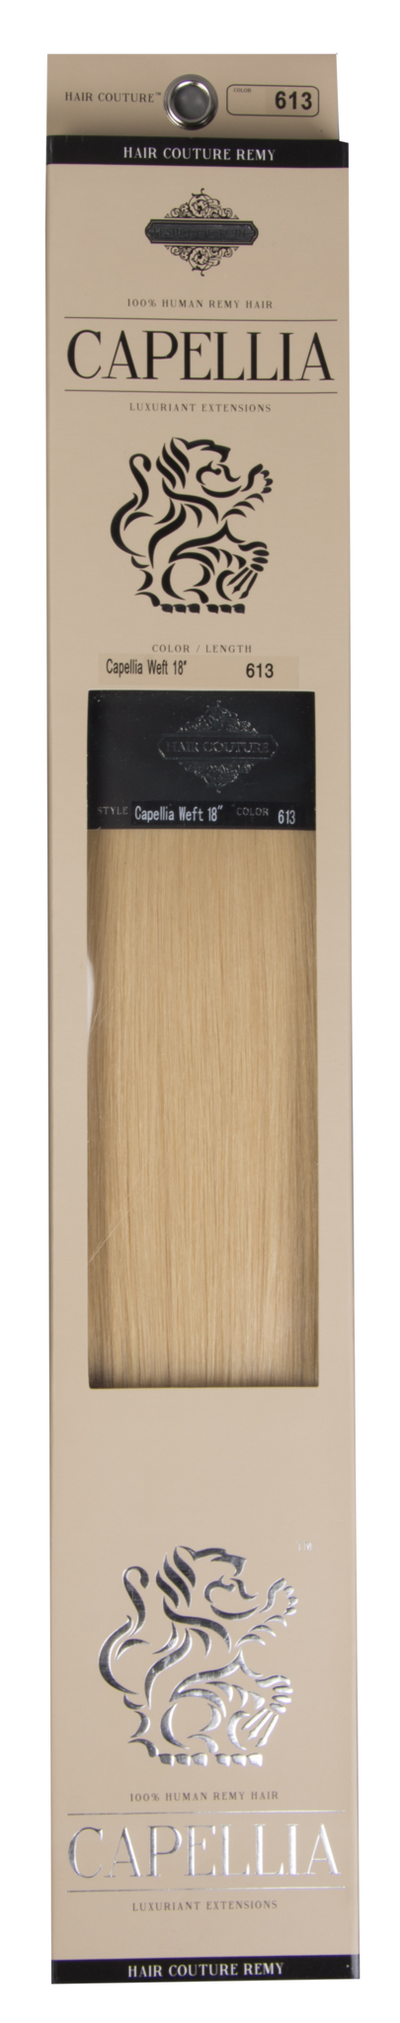 Capellia by Le Prive Wefted Hair Extensions  Packaging